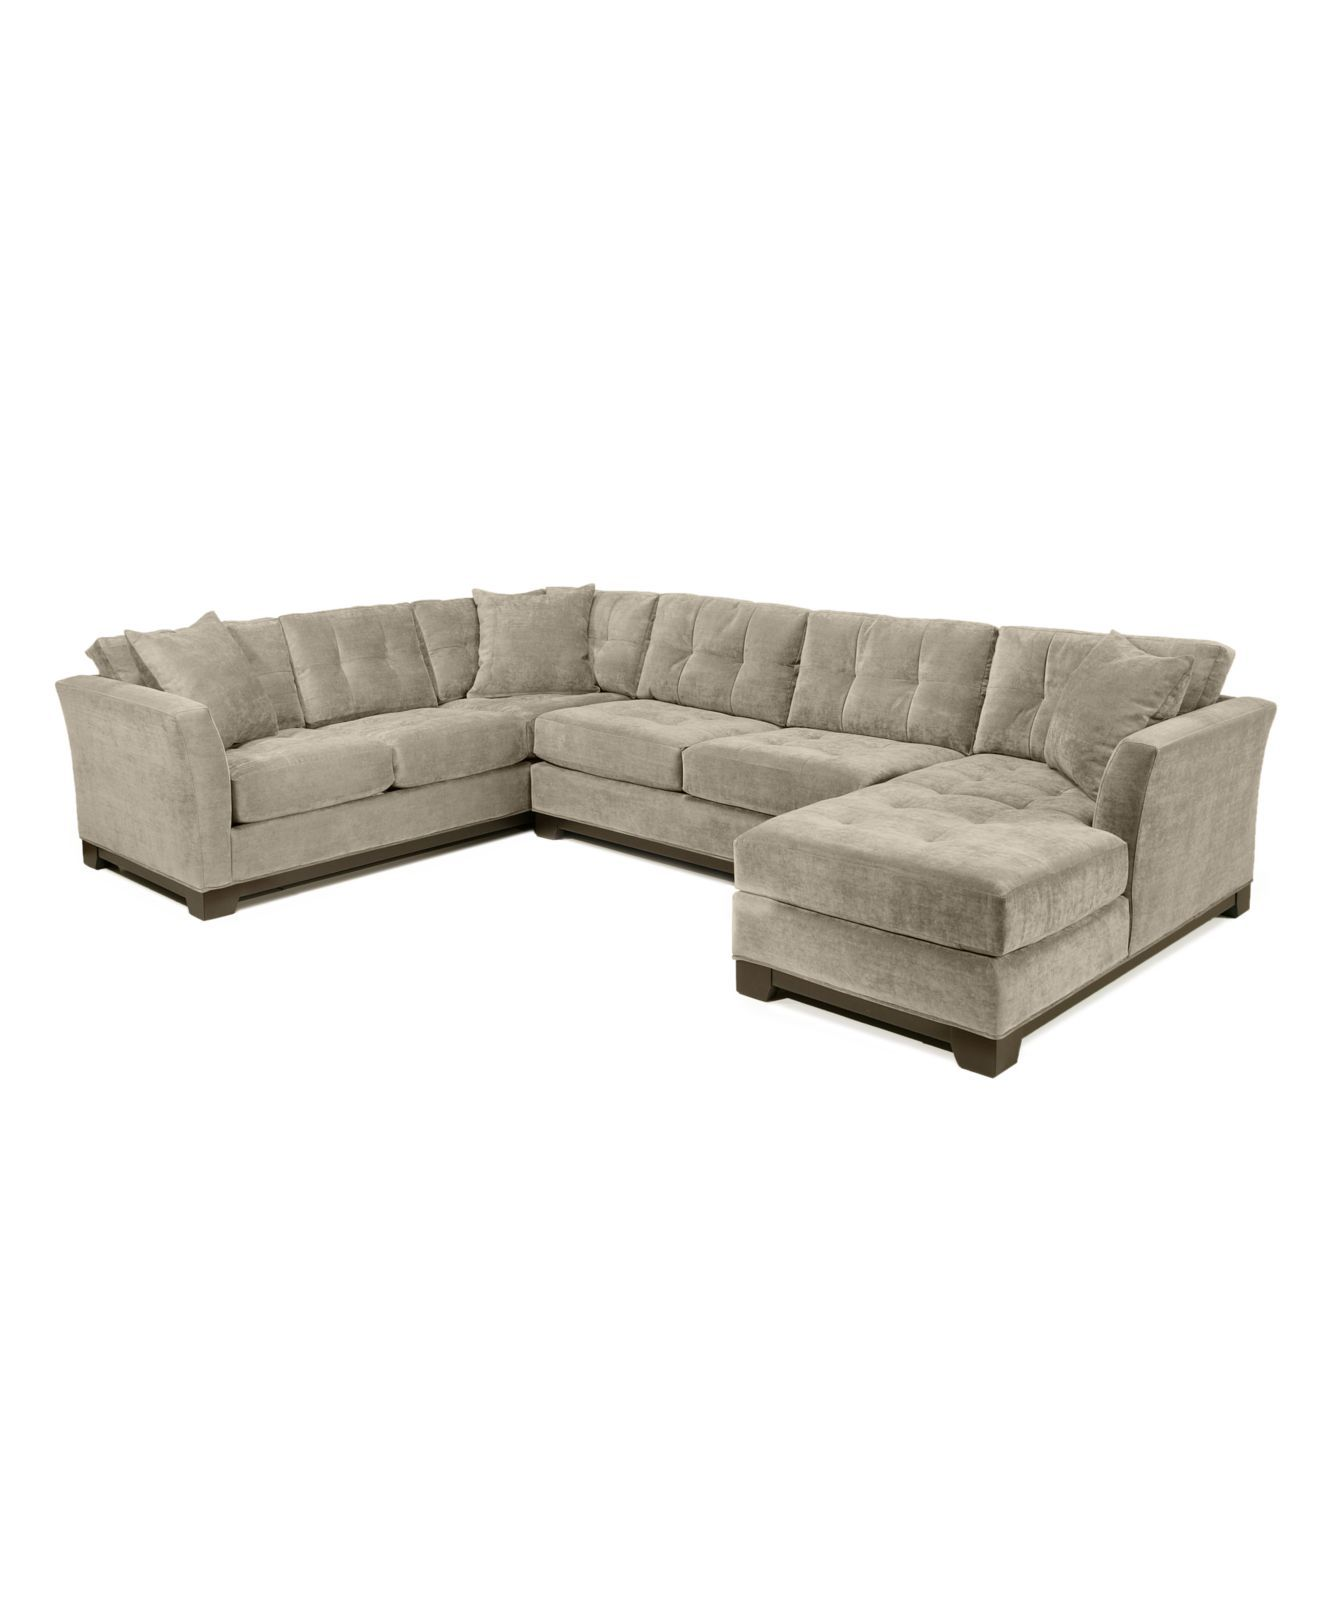 Elliot Fabric Microfiber 3 Piece Chaise Sectional Sofa Created For